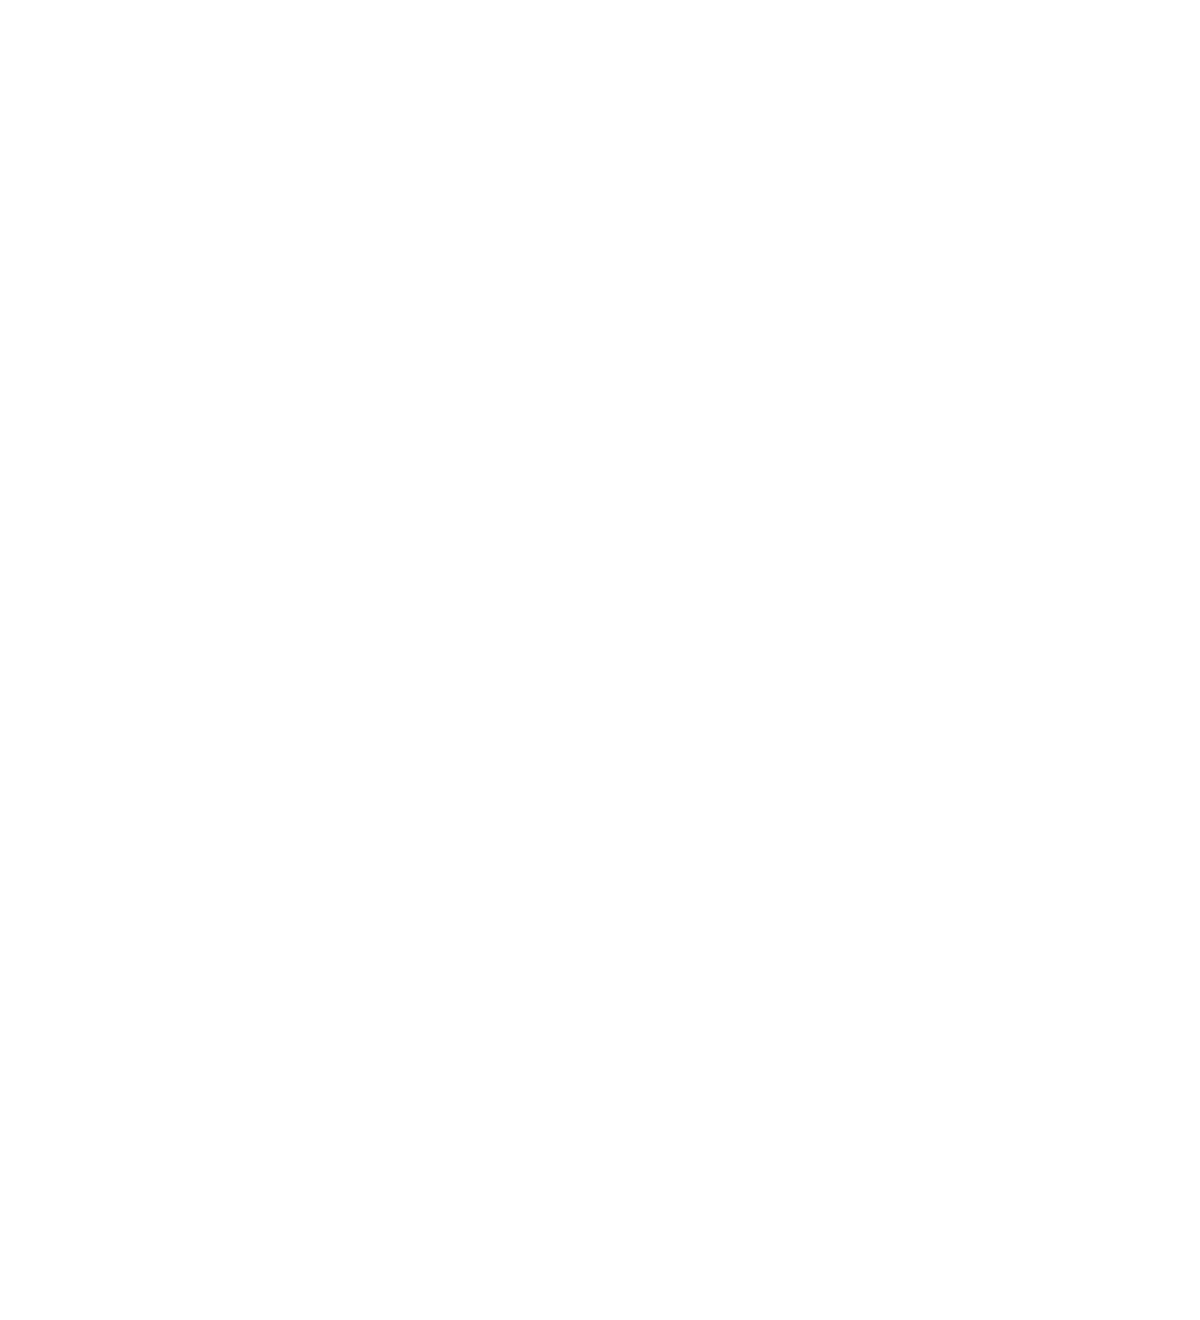 nelsons142